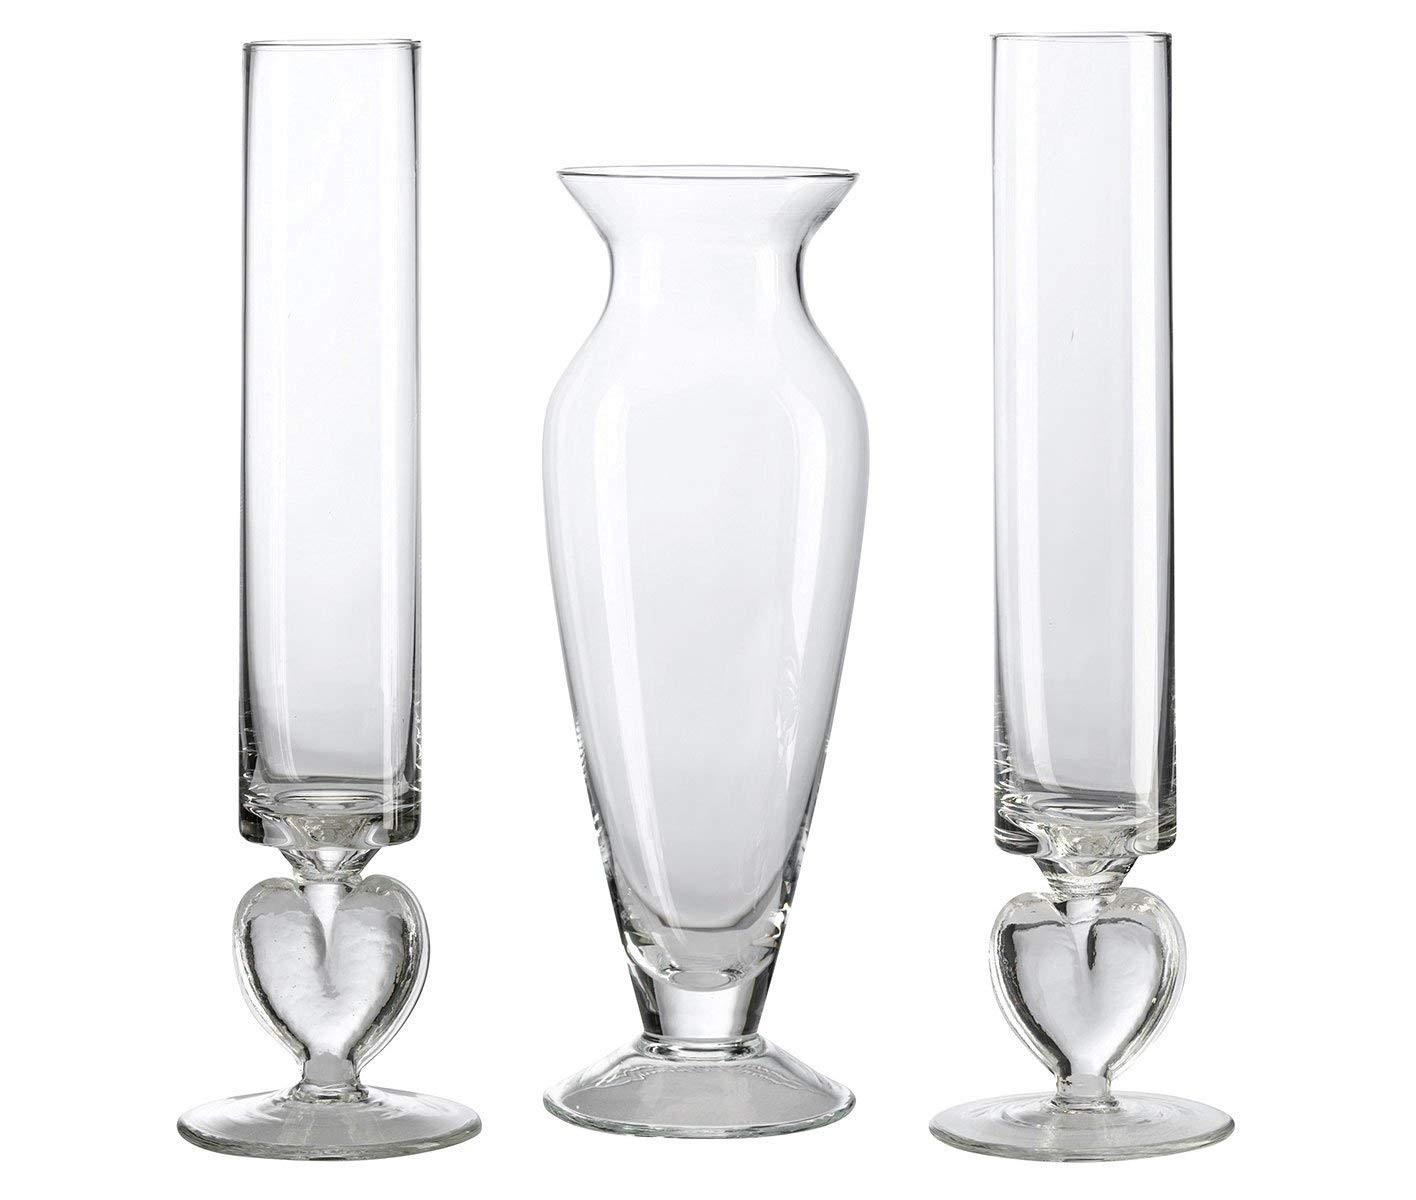 hand blown glass vases for sale of amazon com lillian rose unity sand ceremony wedding vase set home for amazon com lillian rose unity sand ceremony wedding vase set home kitchen